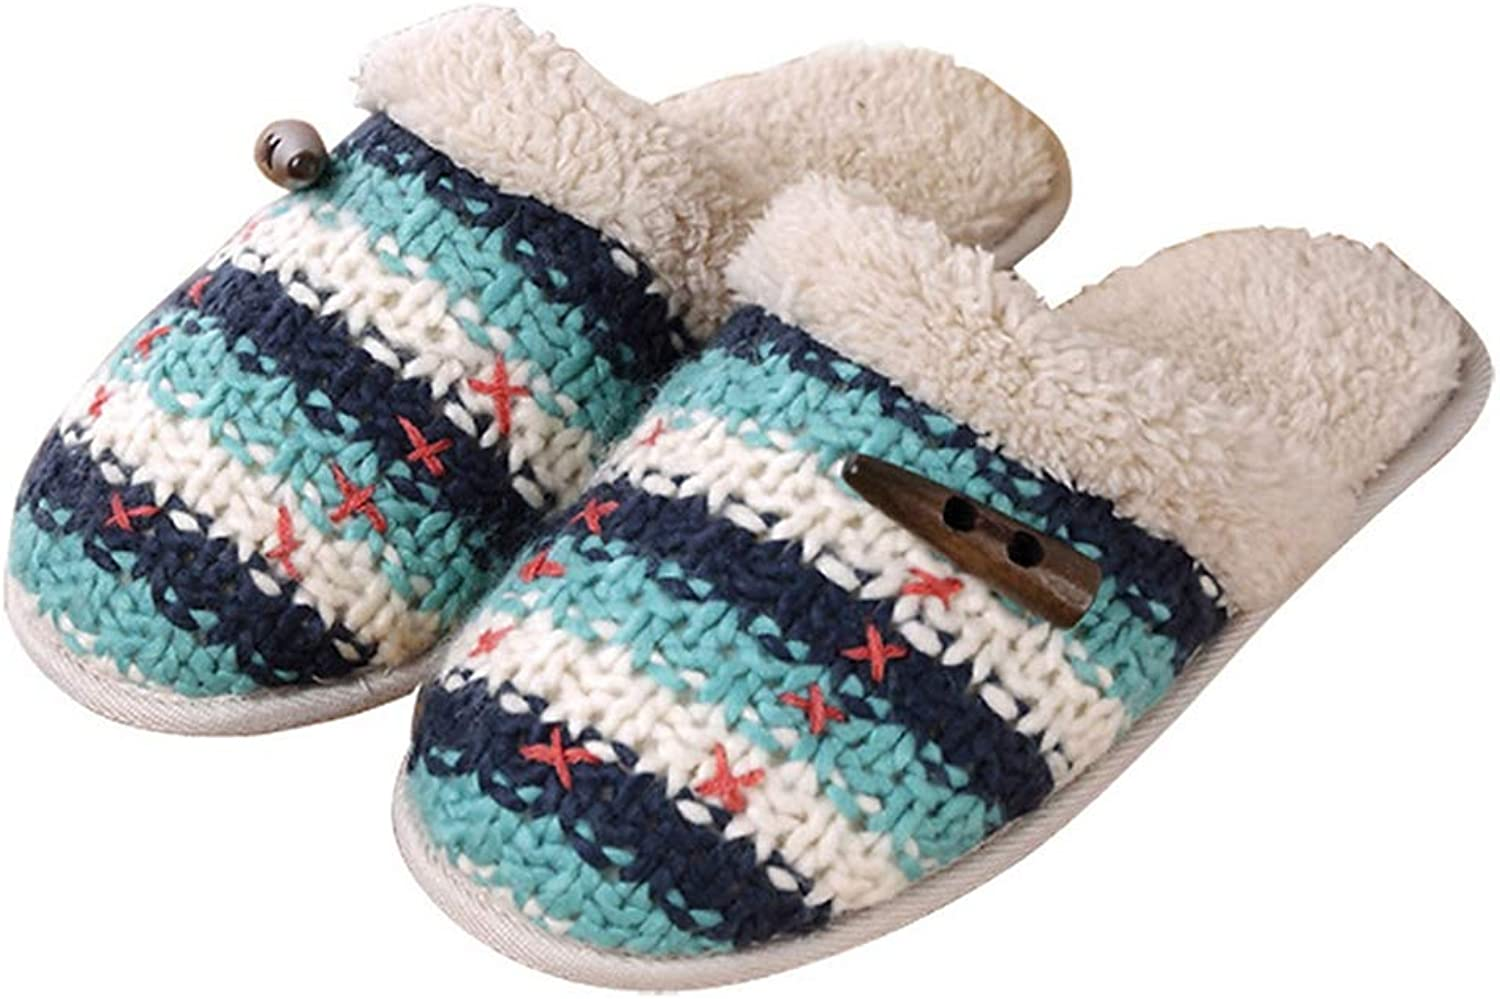 ASO-SLING Women's Sweater Knit Memory Foam Slipper Terry Cloth Anti Skid Indoor Outdoor Slip-on House shoes